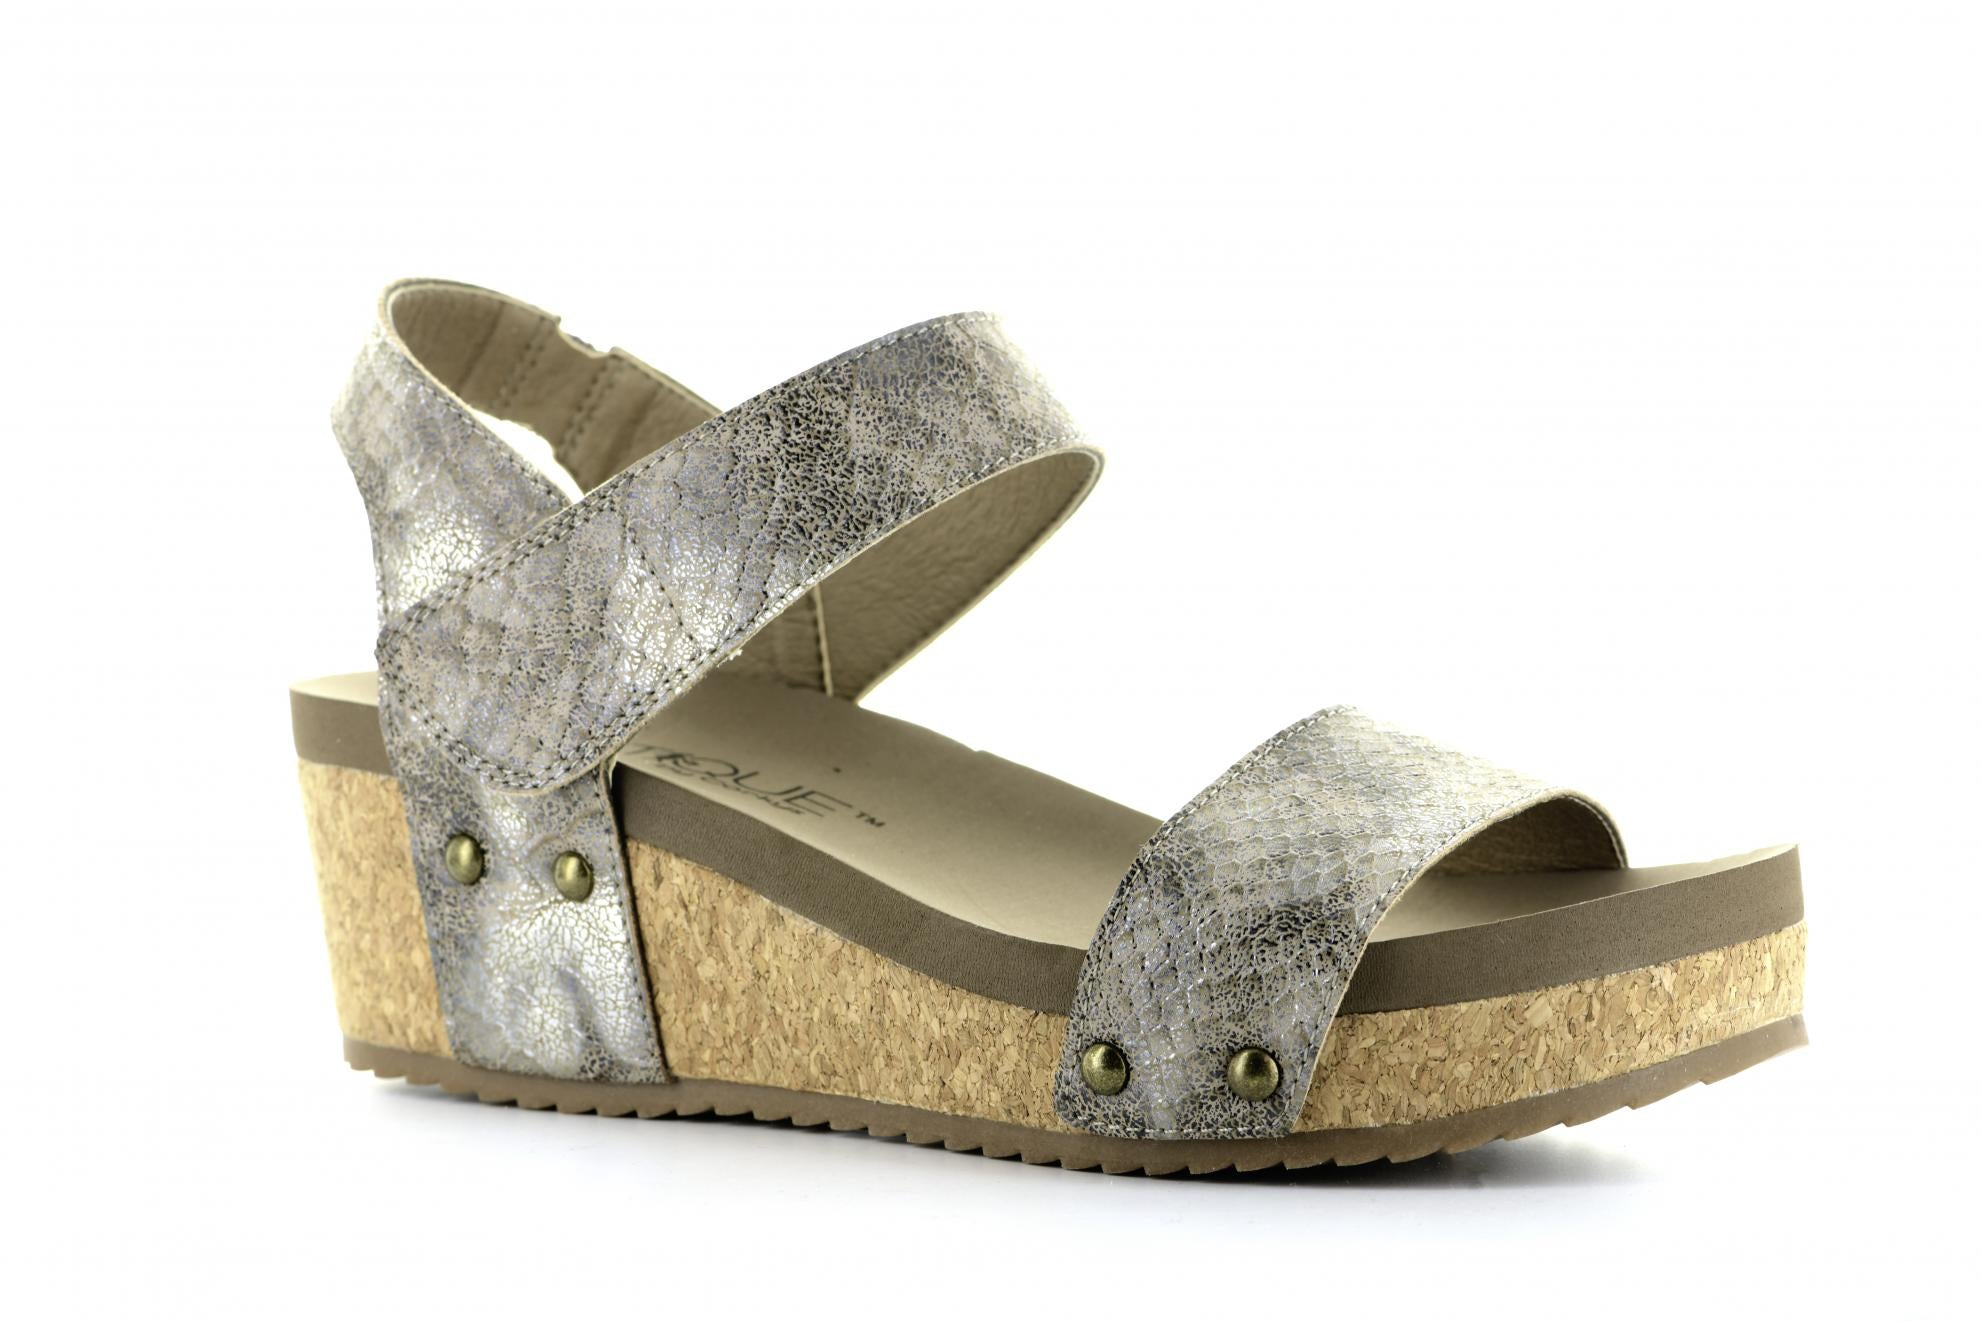 Corkys Shoes - Slidell Taupe Snake Wedge